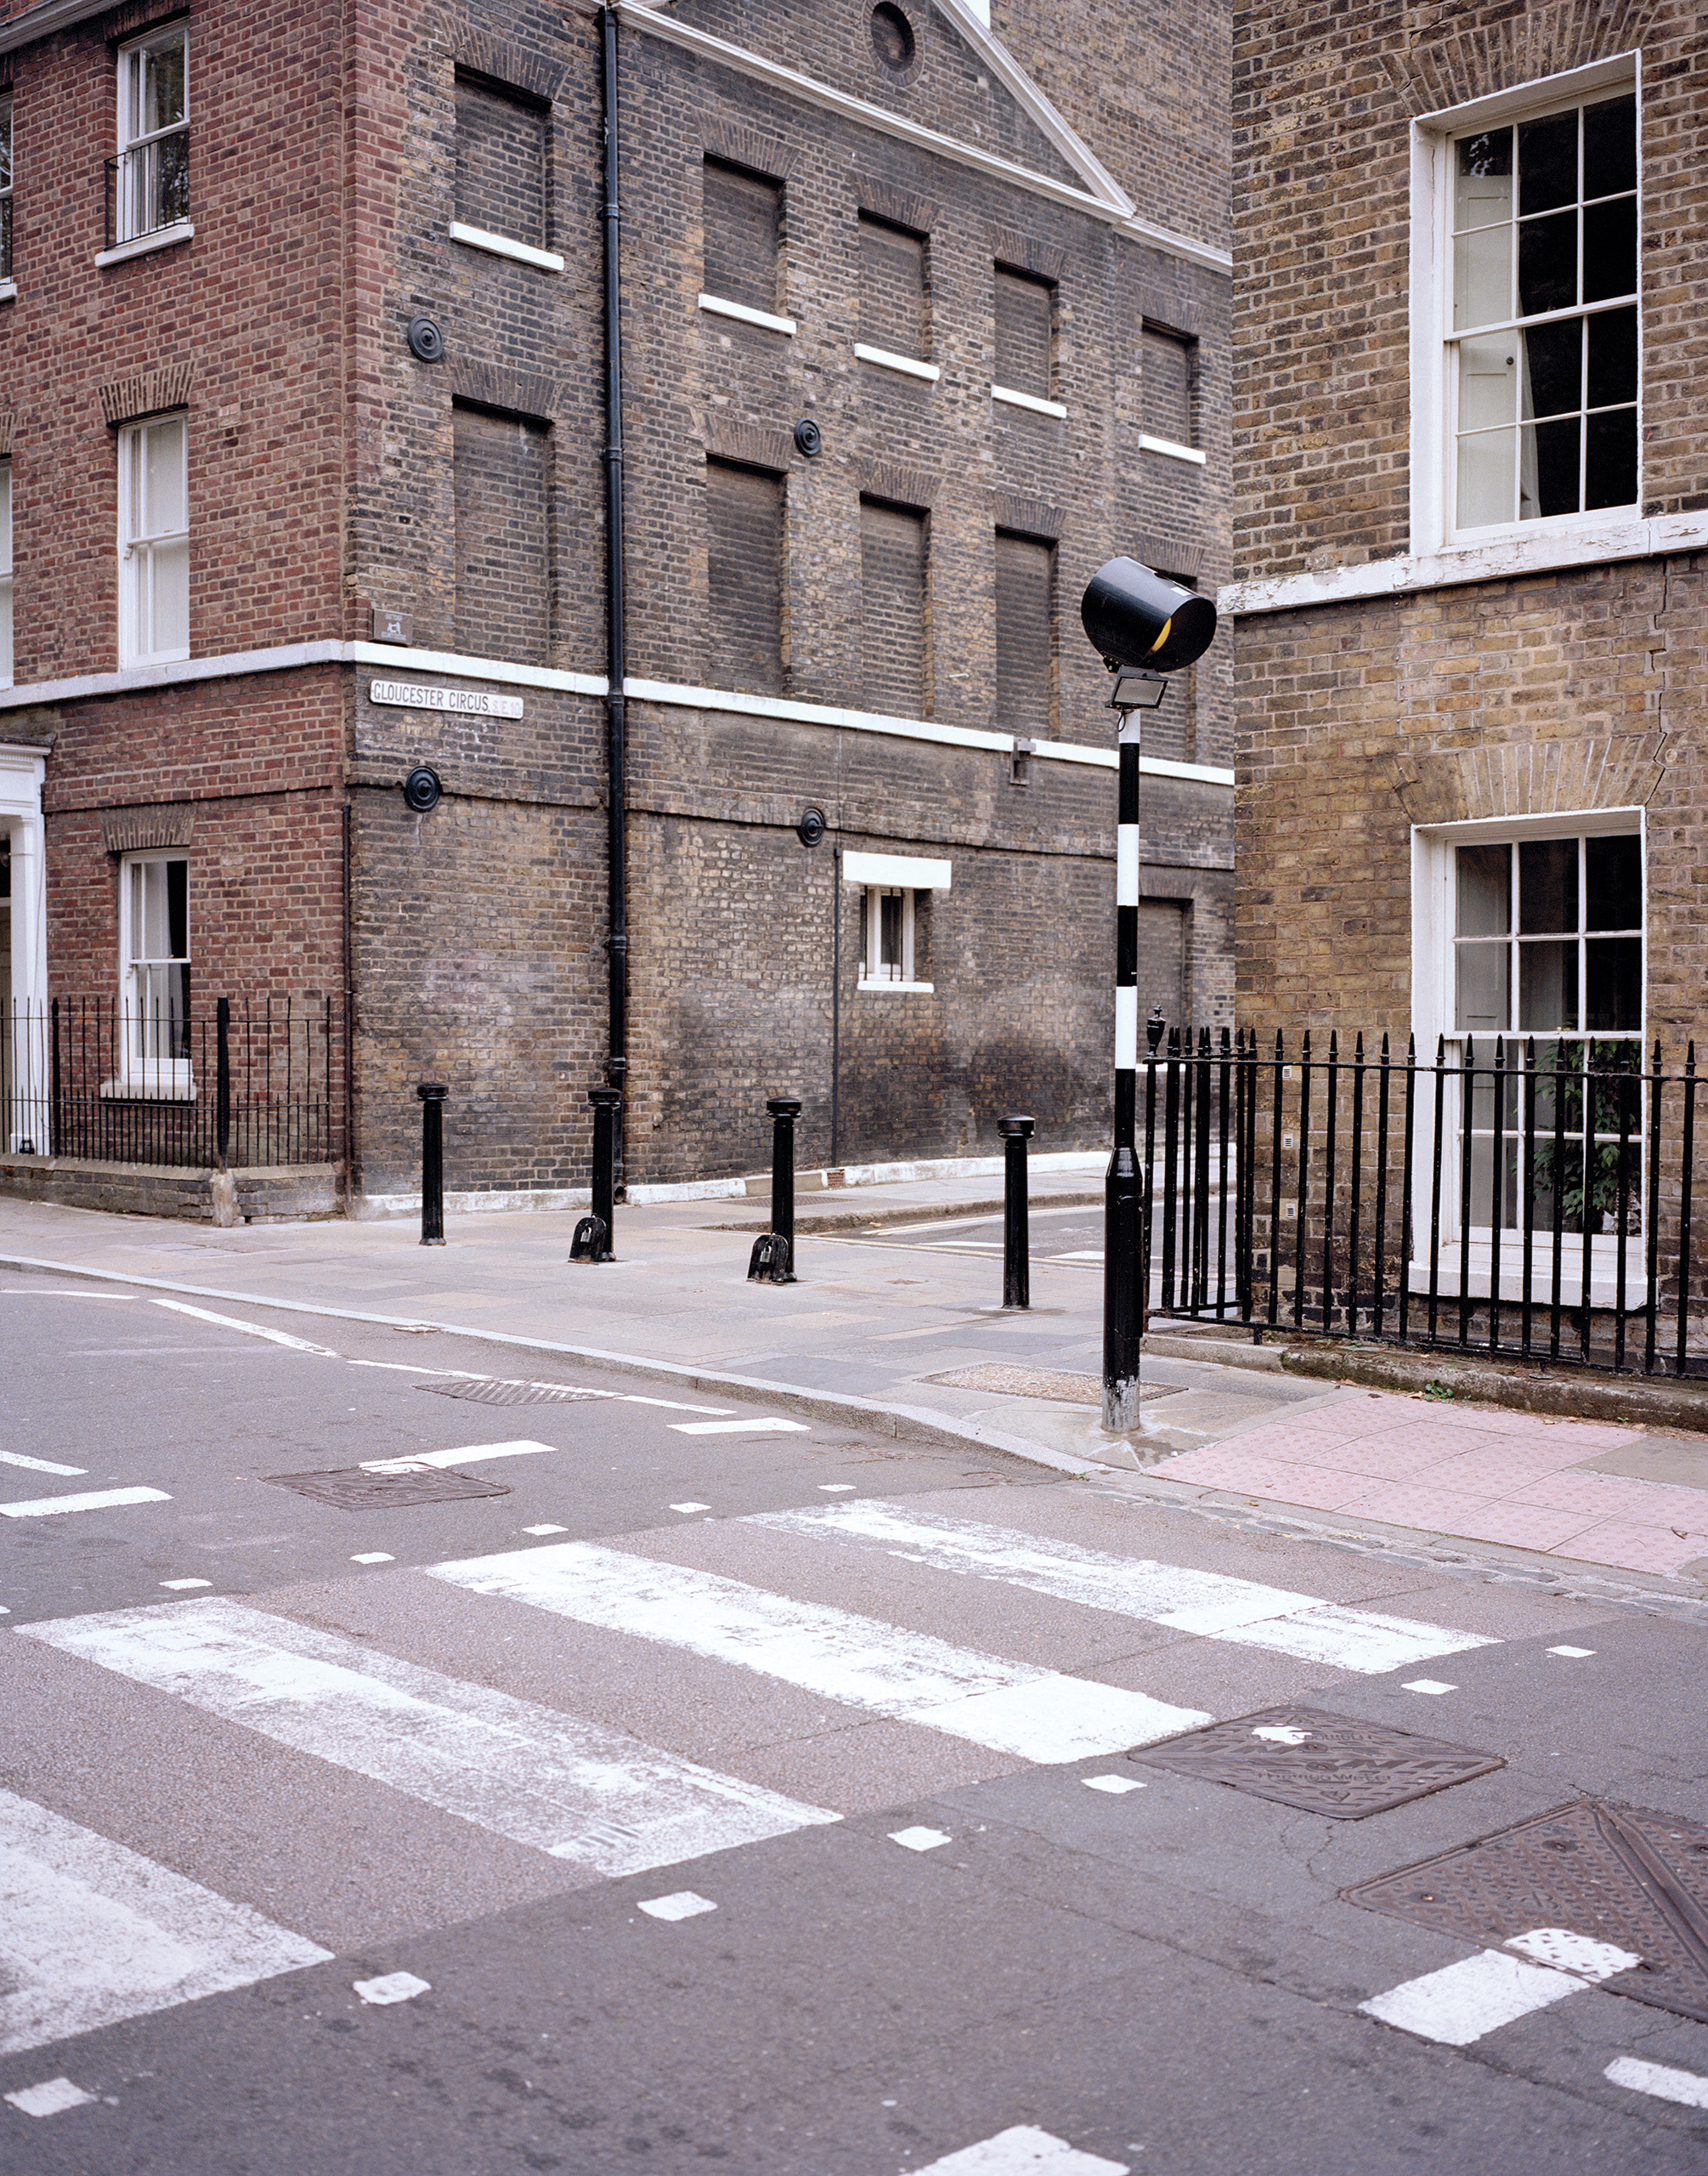 London Zebra Crossing.jpg